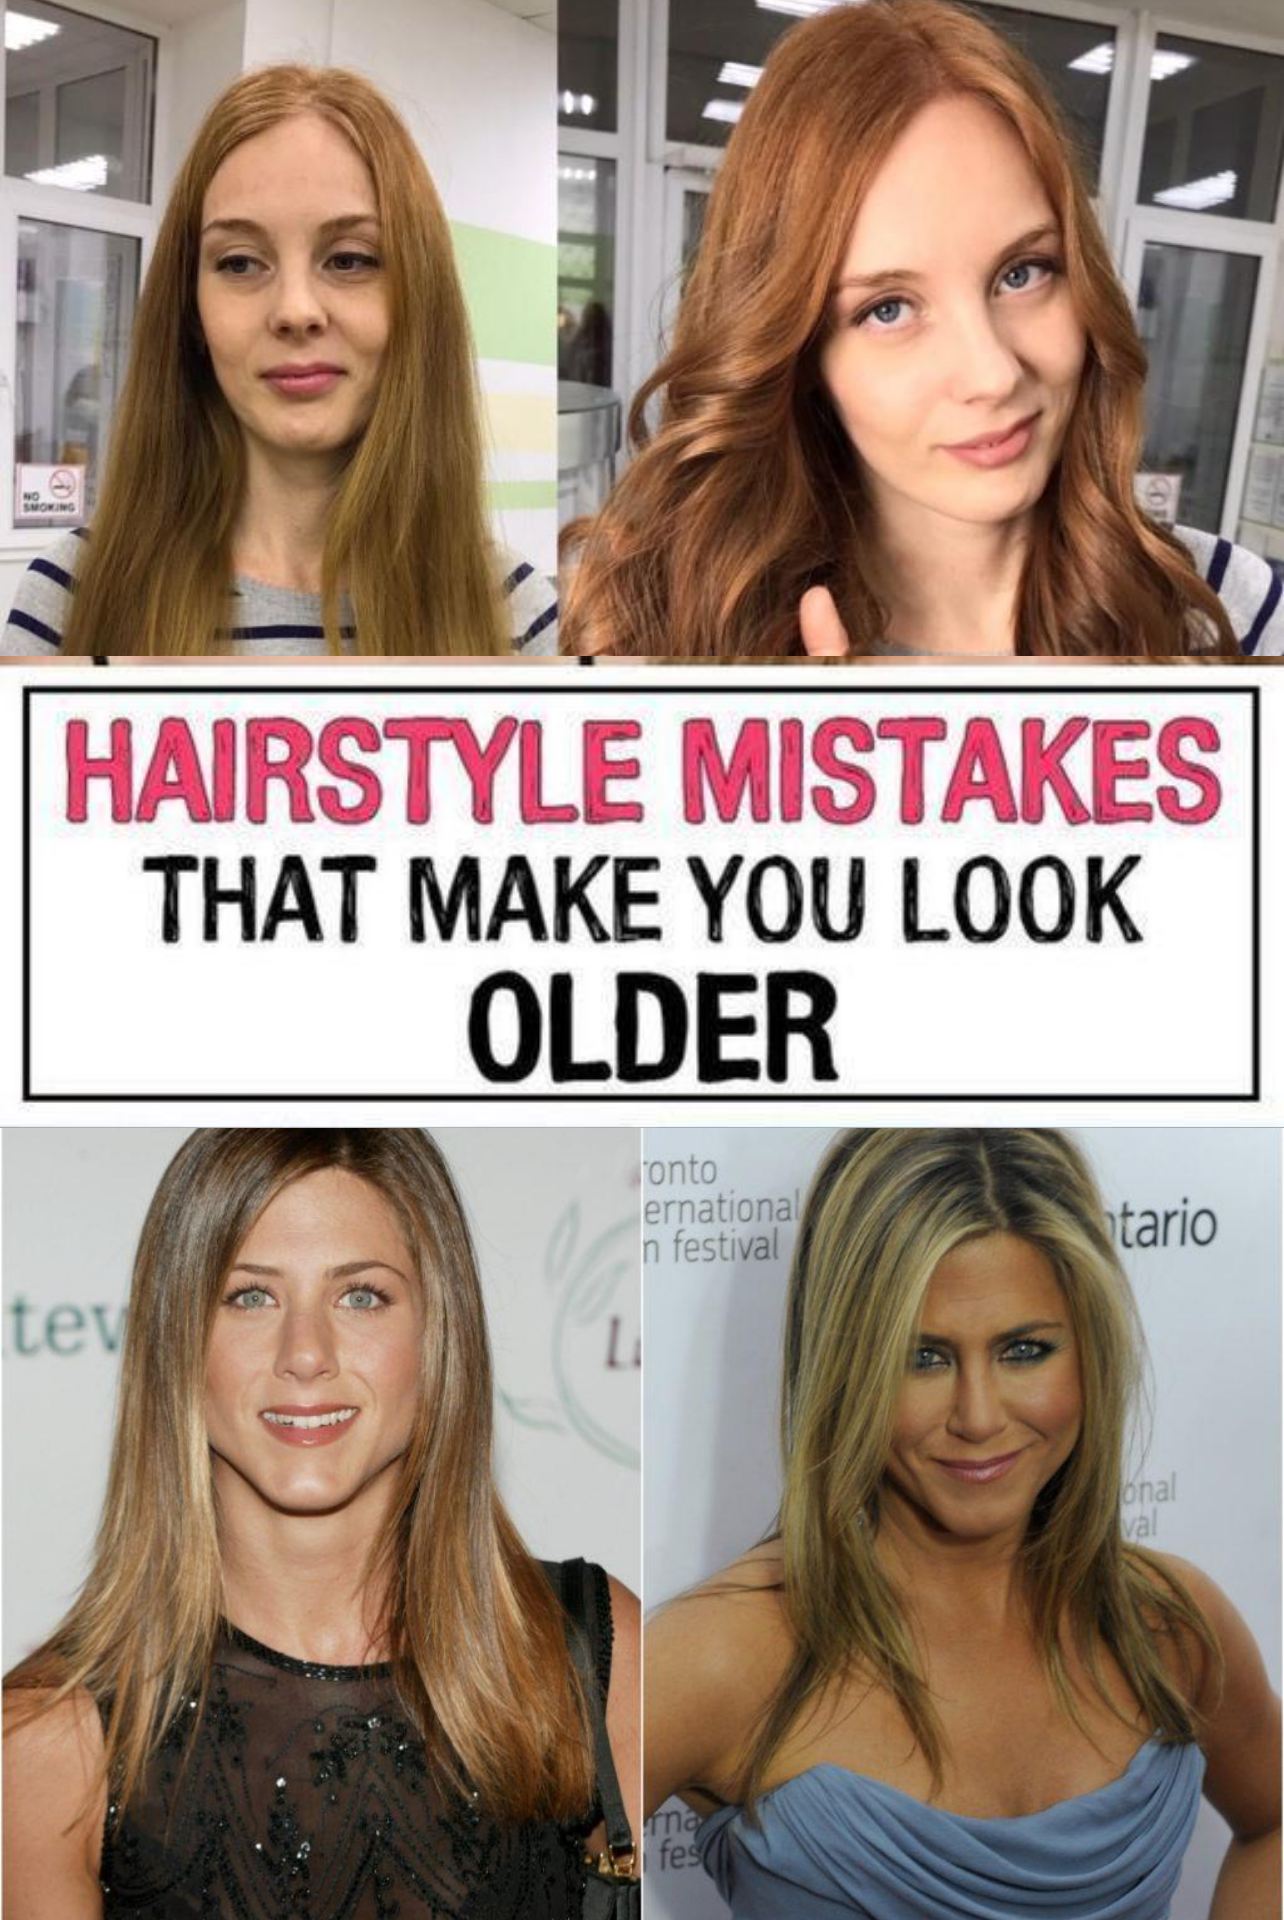 11 Hairstyle Mistakes That Are Aging You In 2020 Hairstyle Hair Mistakes Mom Hairstyles